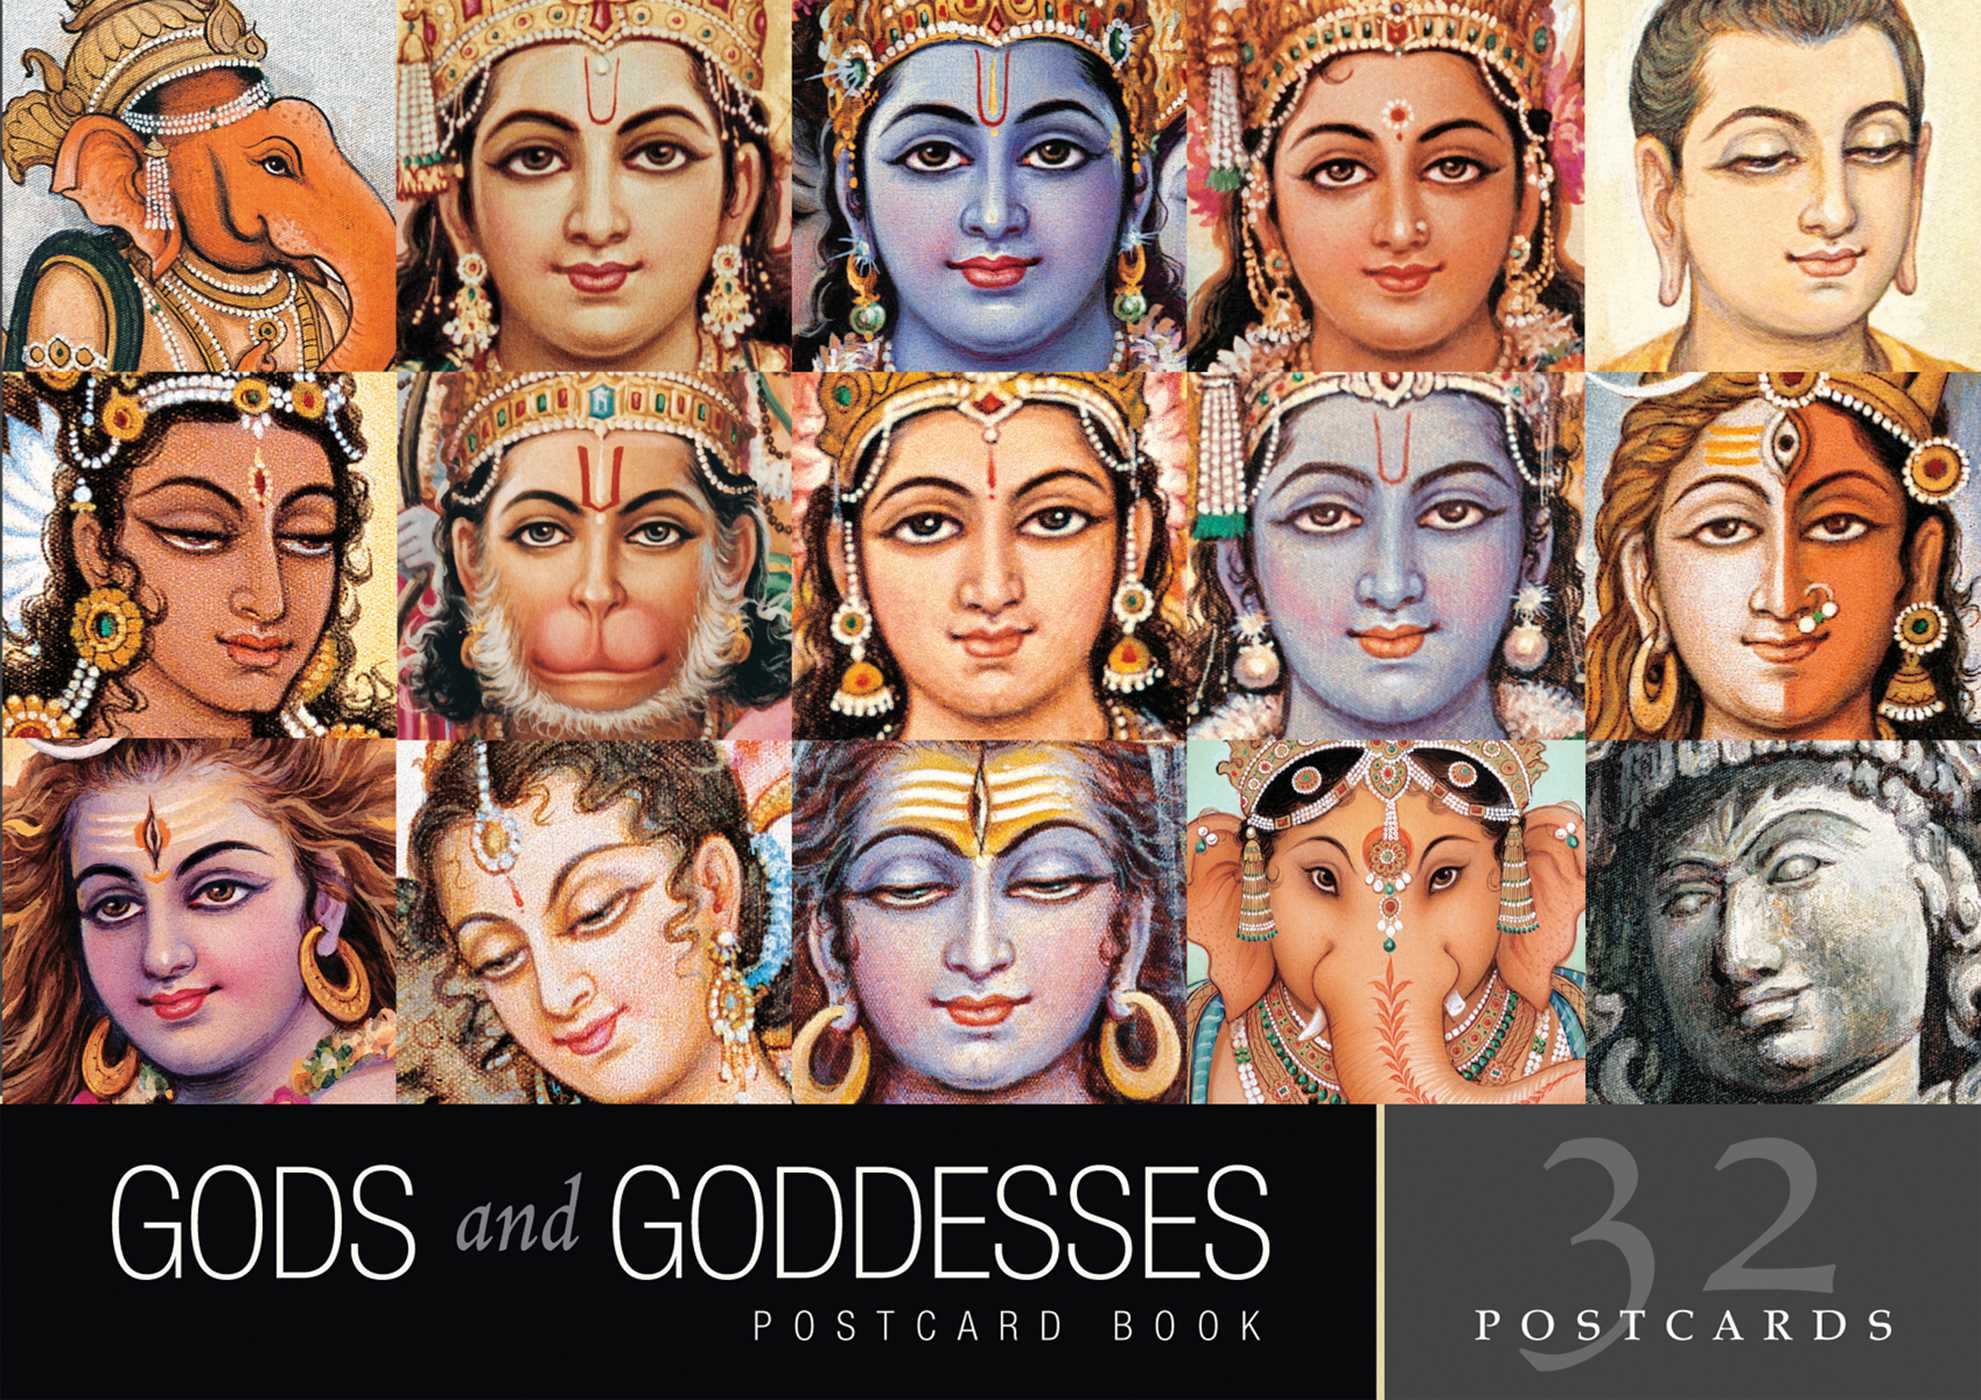 gods and goddesses postcard book book by indra sharma official